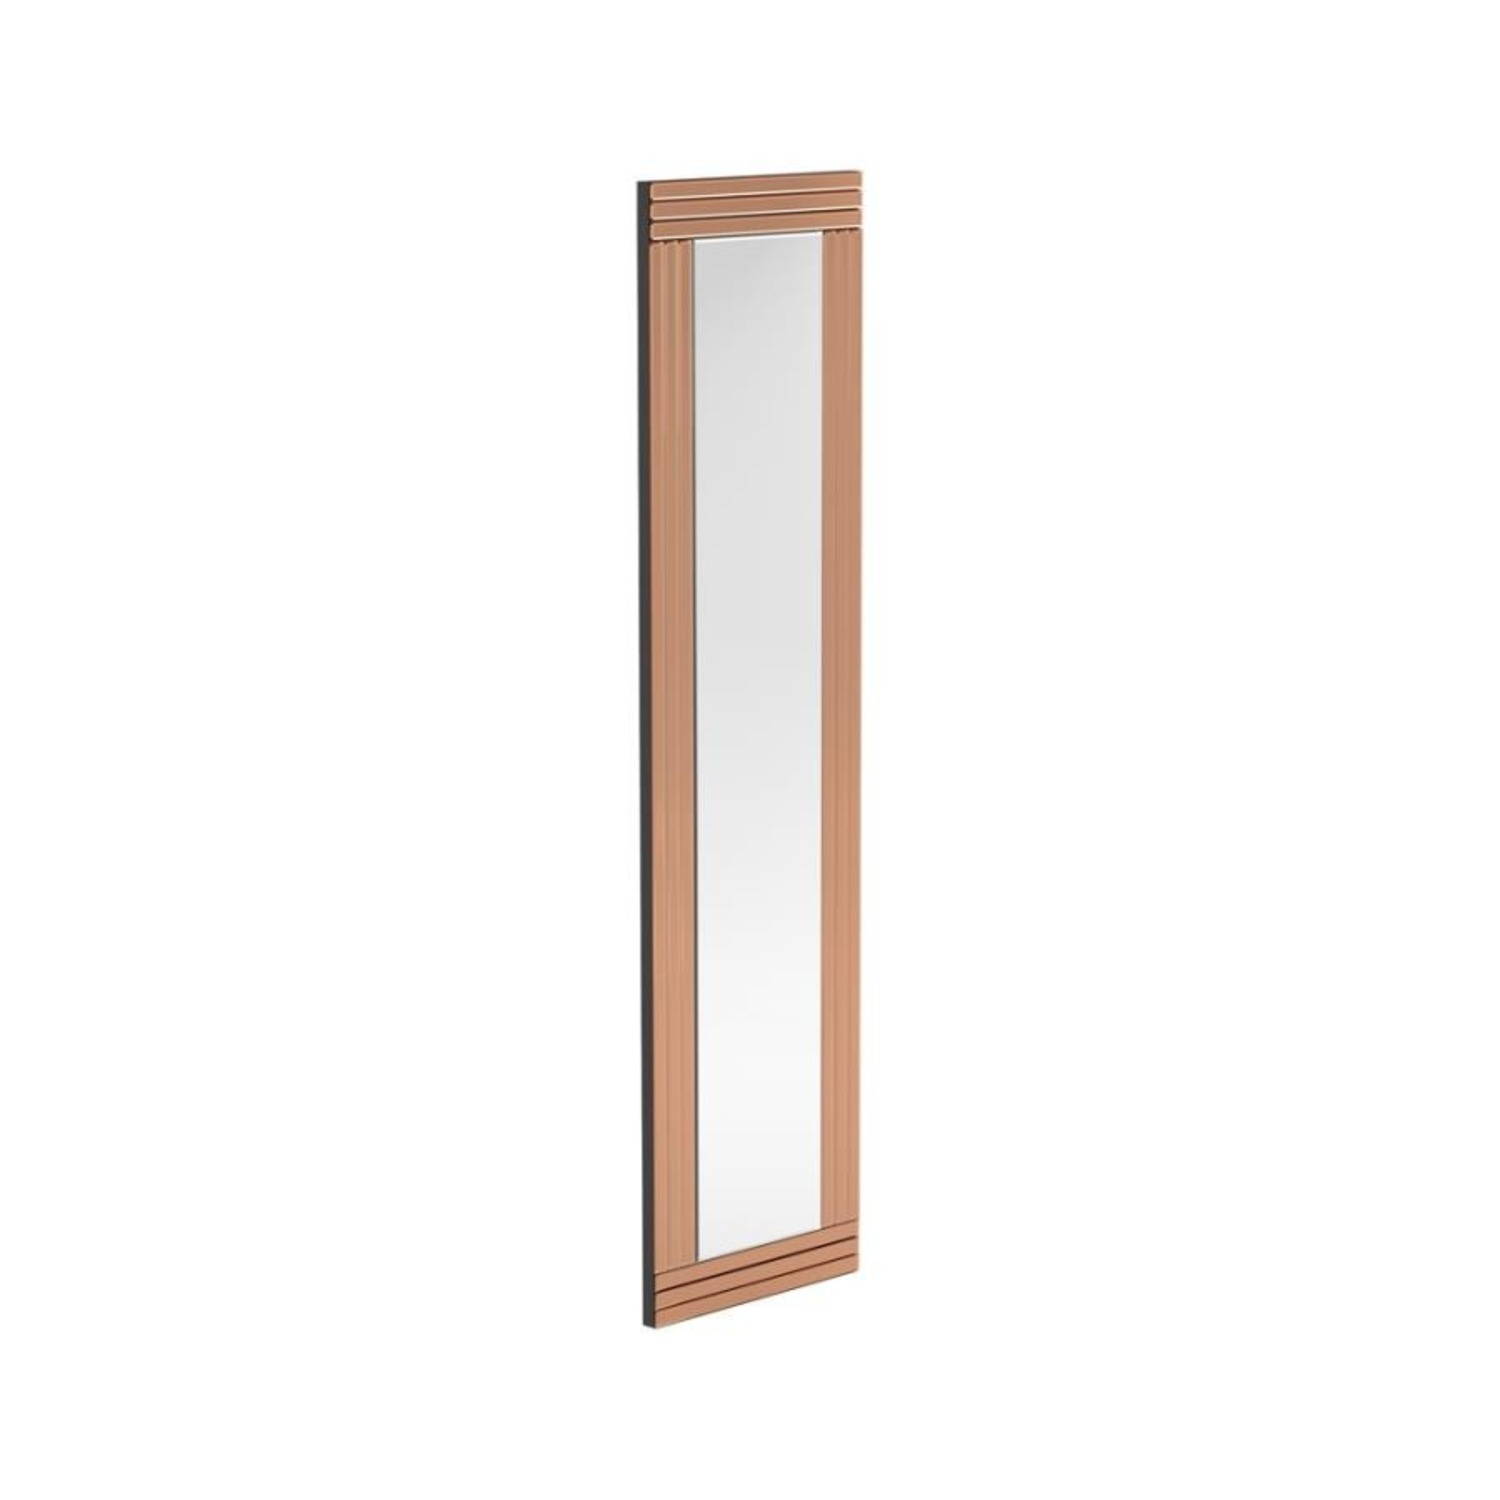 Wall Mirror In Rose Gold W/ Clean Lined Silhouette - image-0